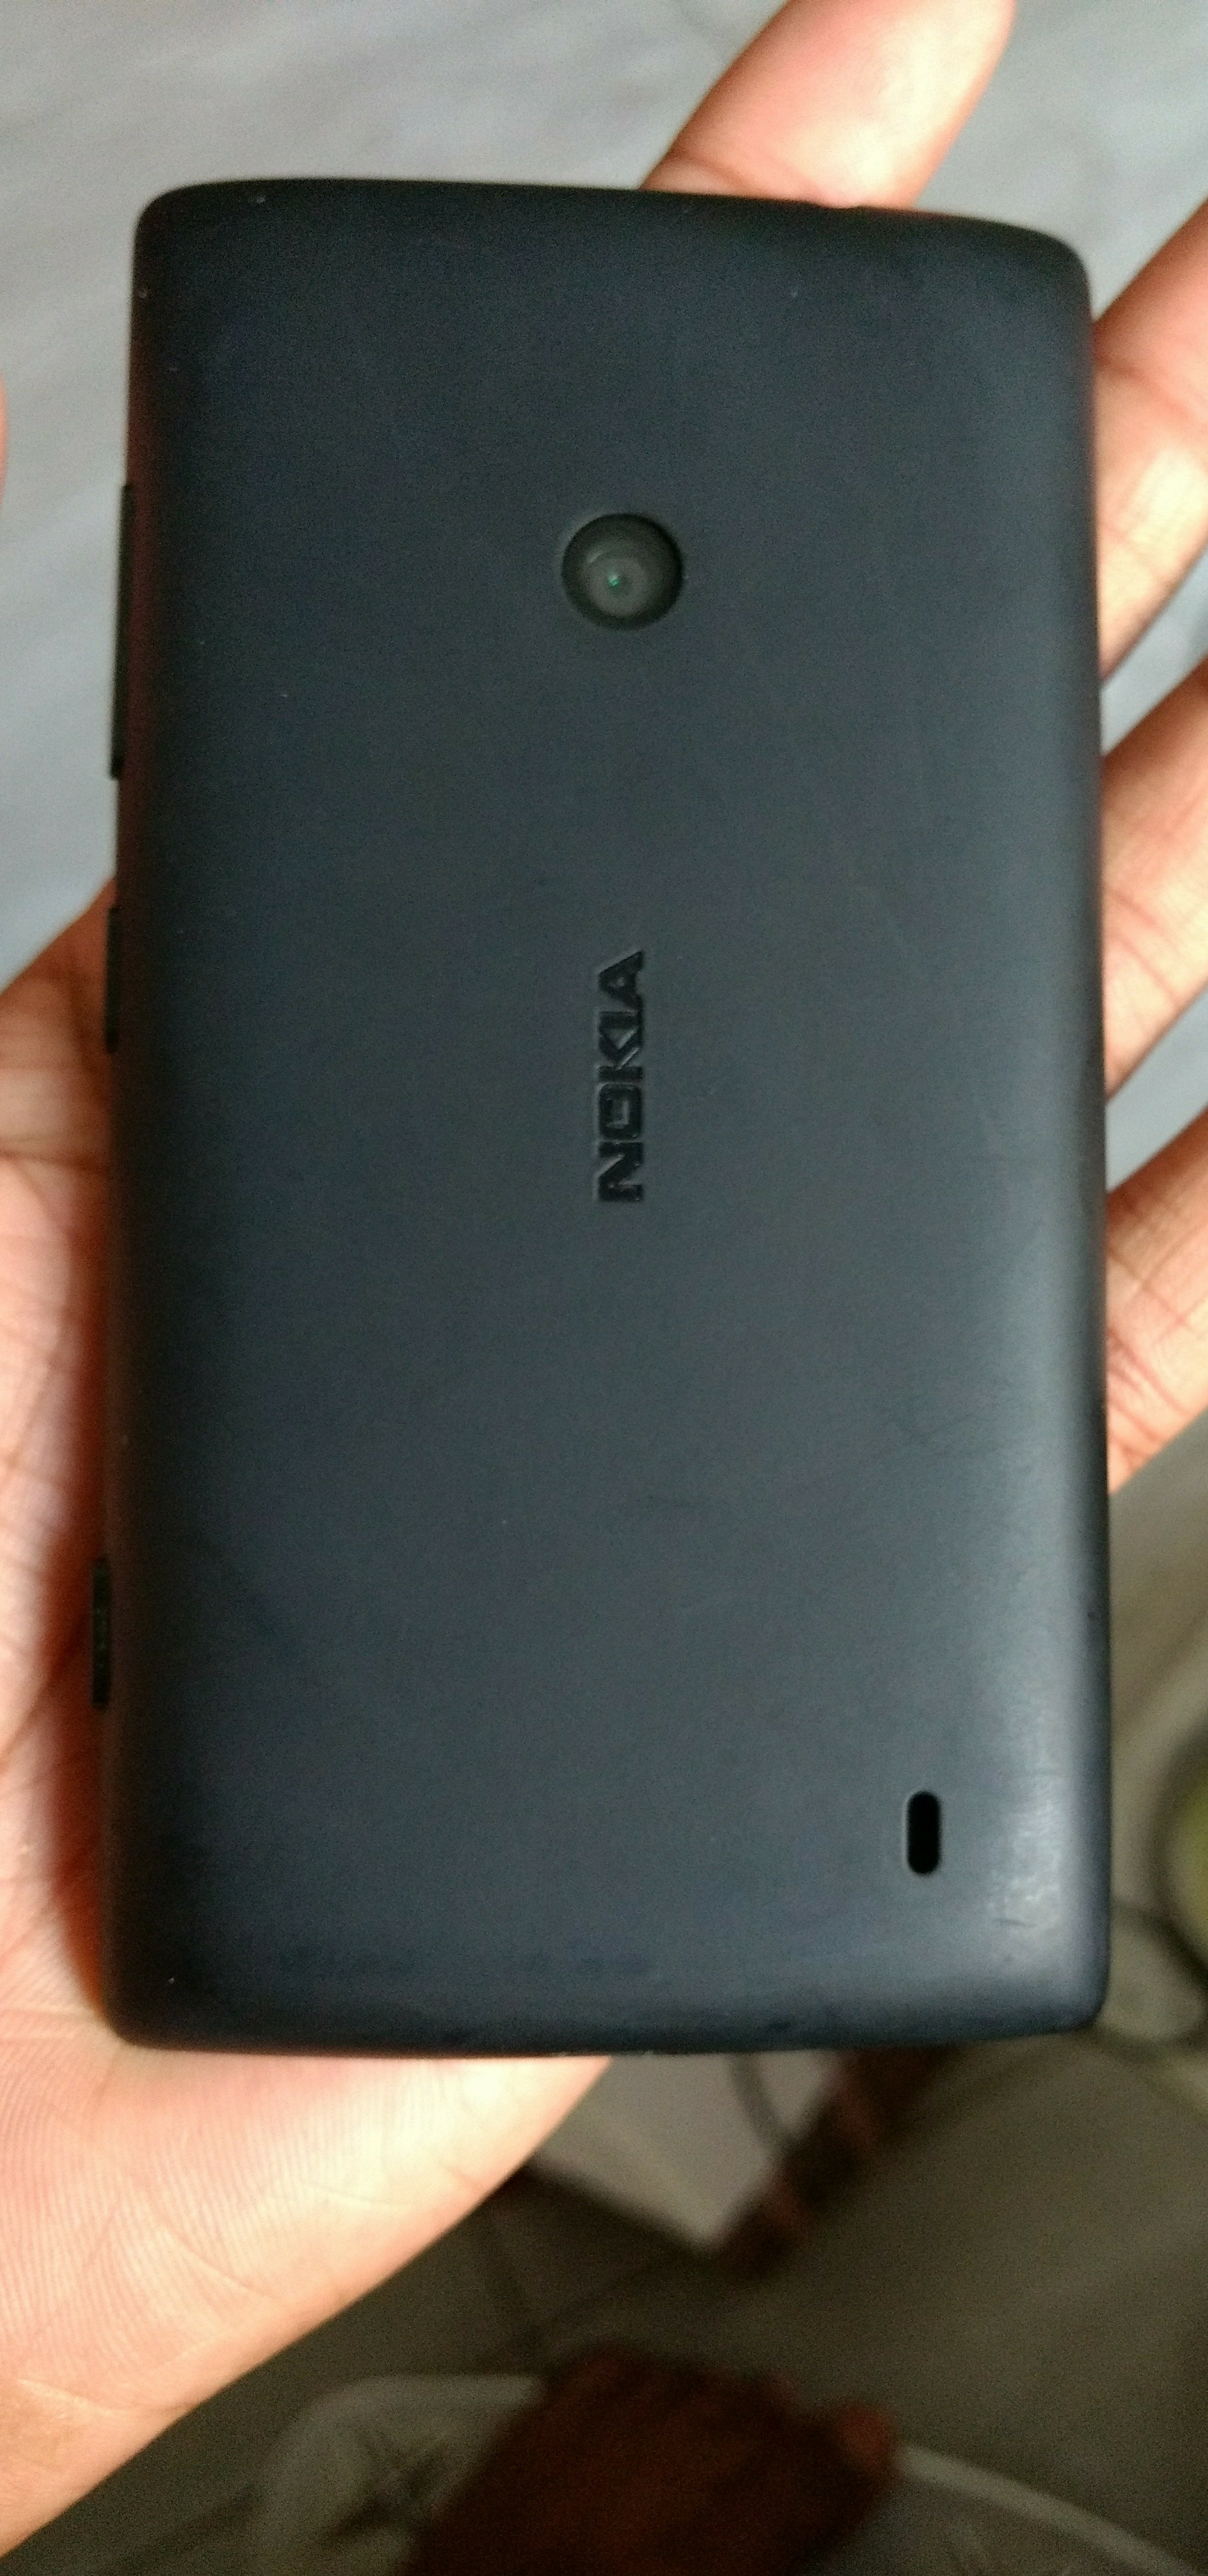 Nokia Lumia 520 , Comes without box but with all accessories.